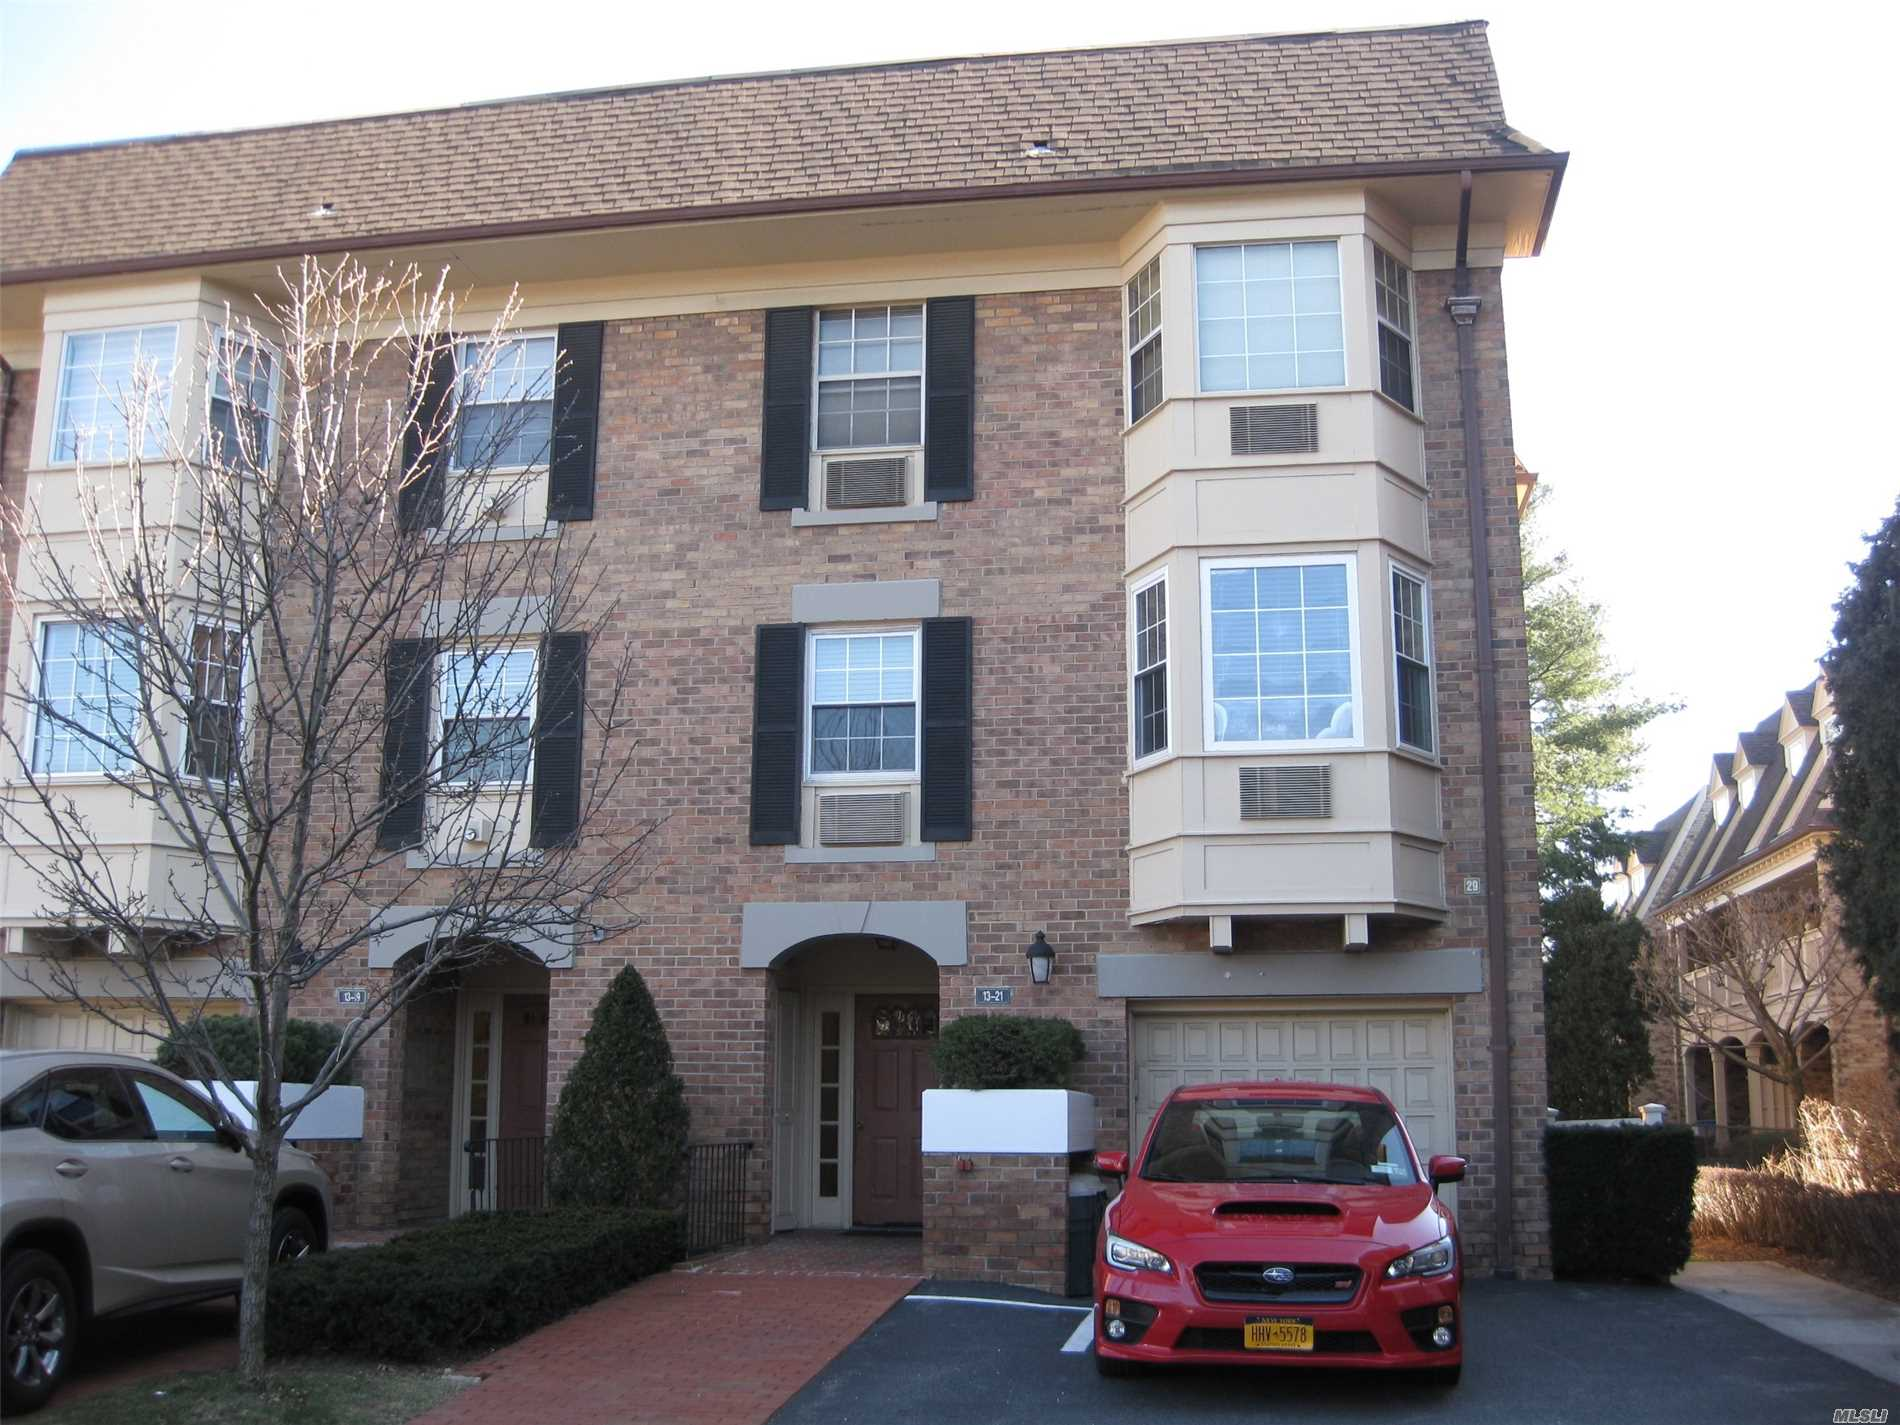 Prime Location, Corner Unit, Totally Renovation Top Of The Line Material & Appliances, Brazilian Cherry Wood Floor Through Out, Terrace, Bay Window, Gated Community, Club House, Indoor- Out Door Pool, Tennis Court.